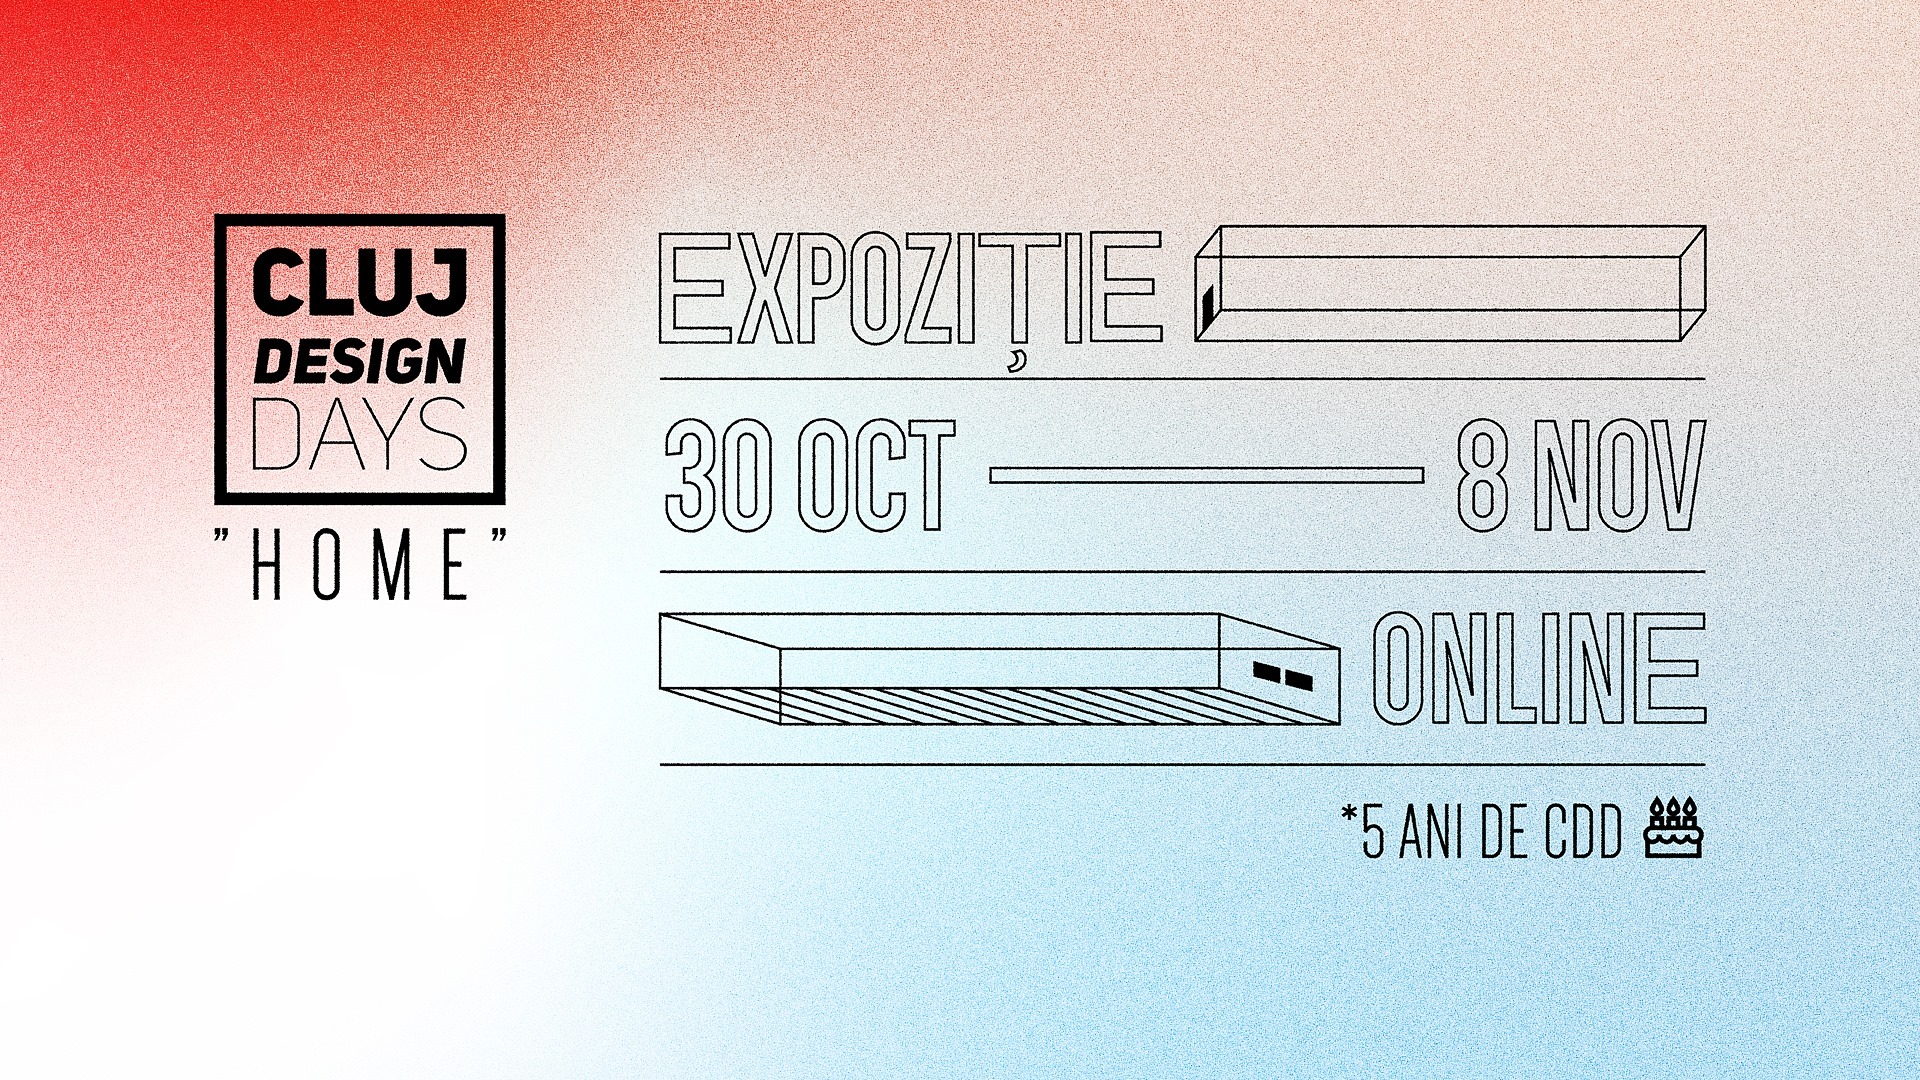 Cluj Design Days / HOME exhibition